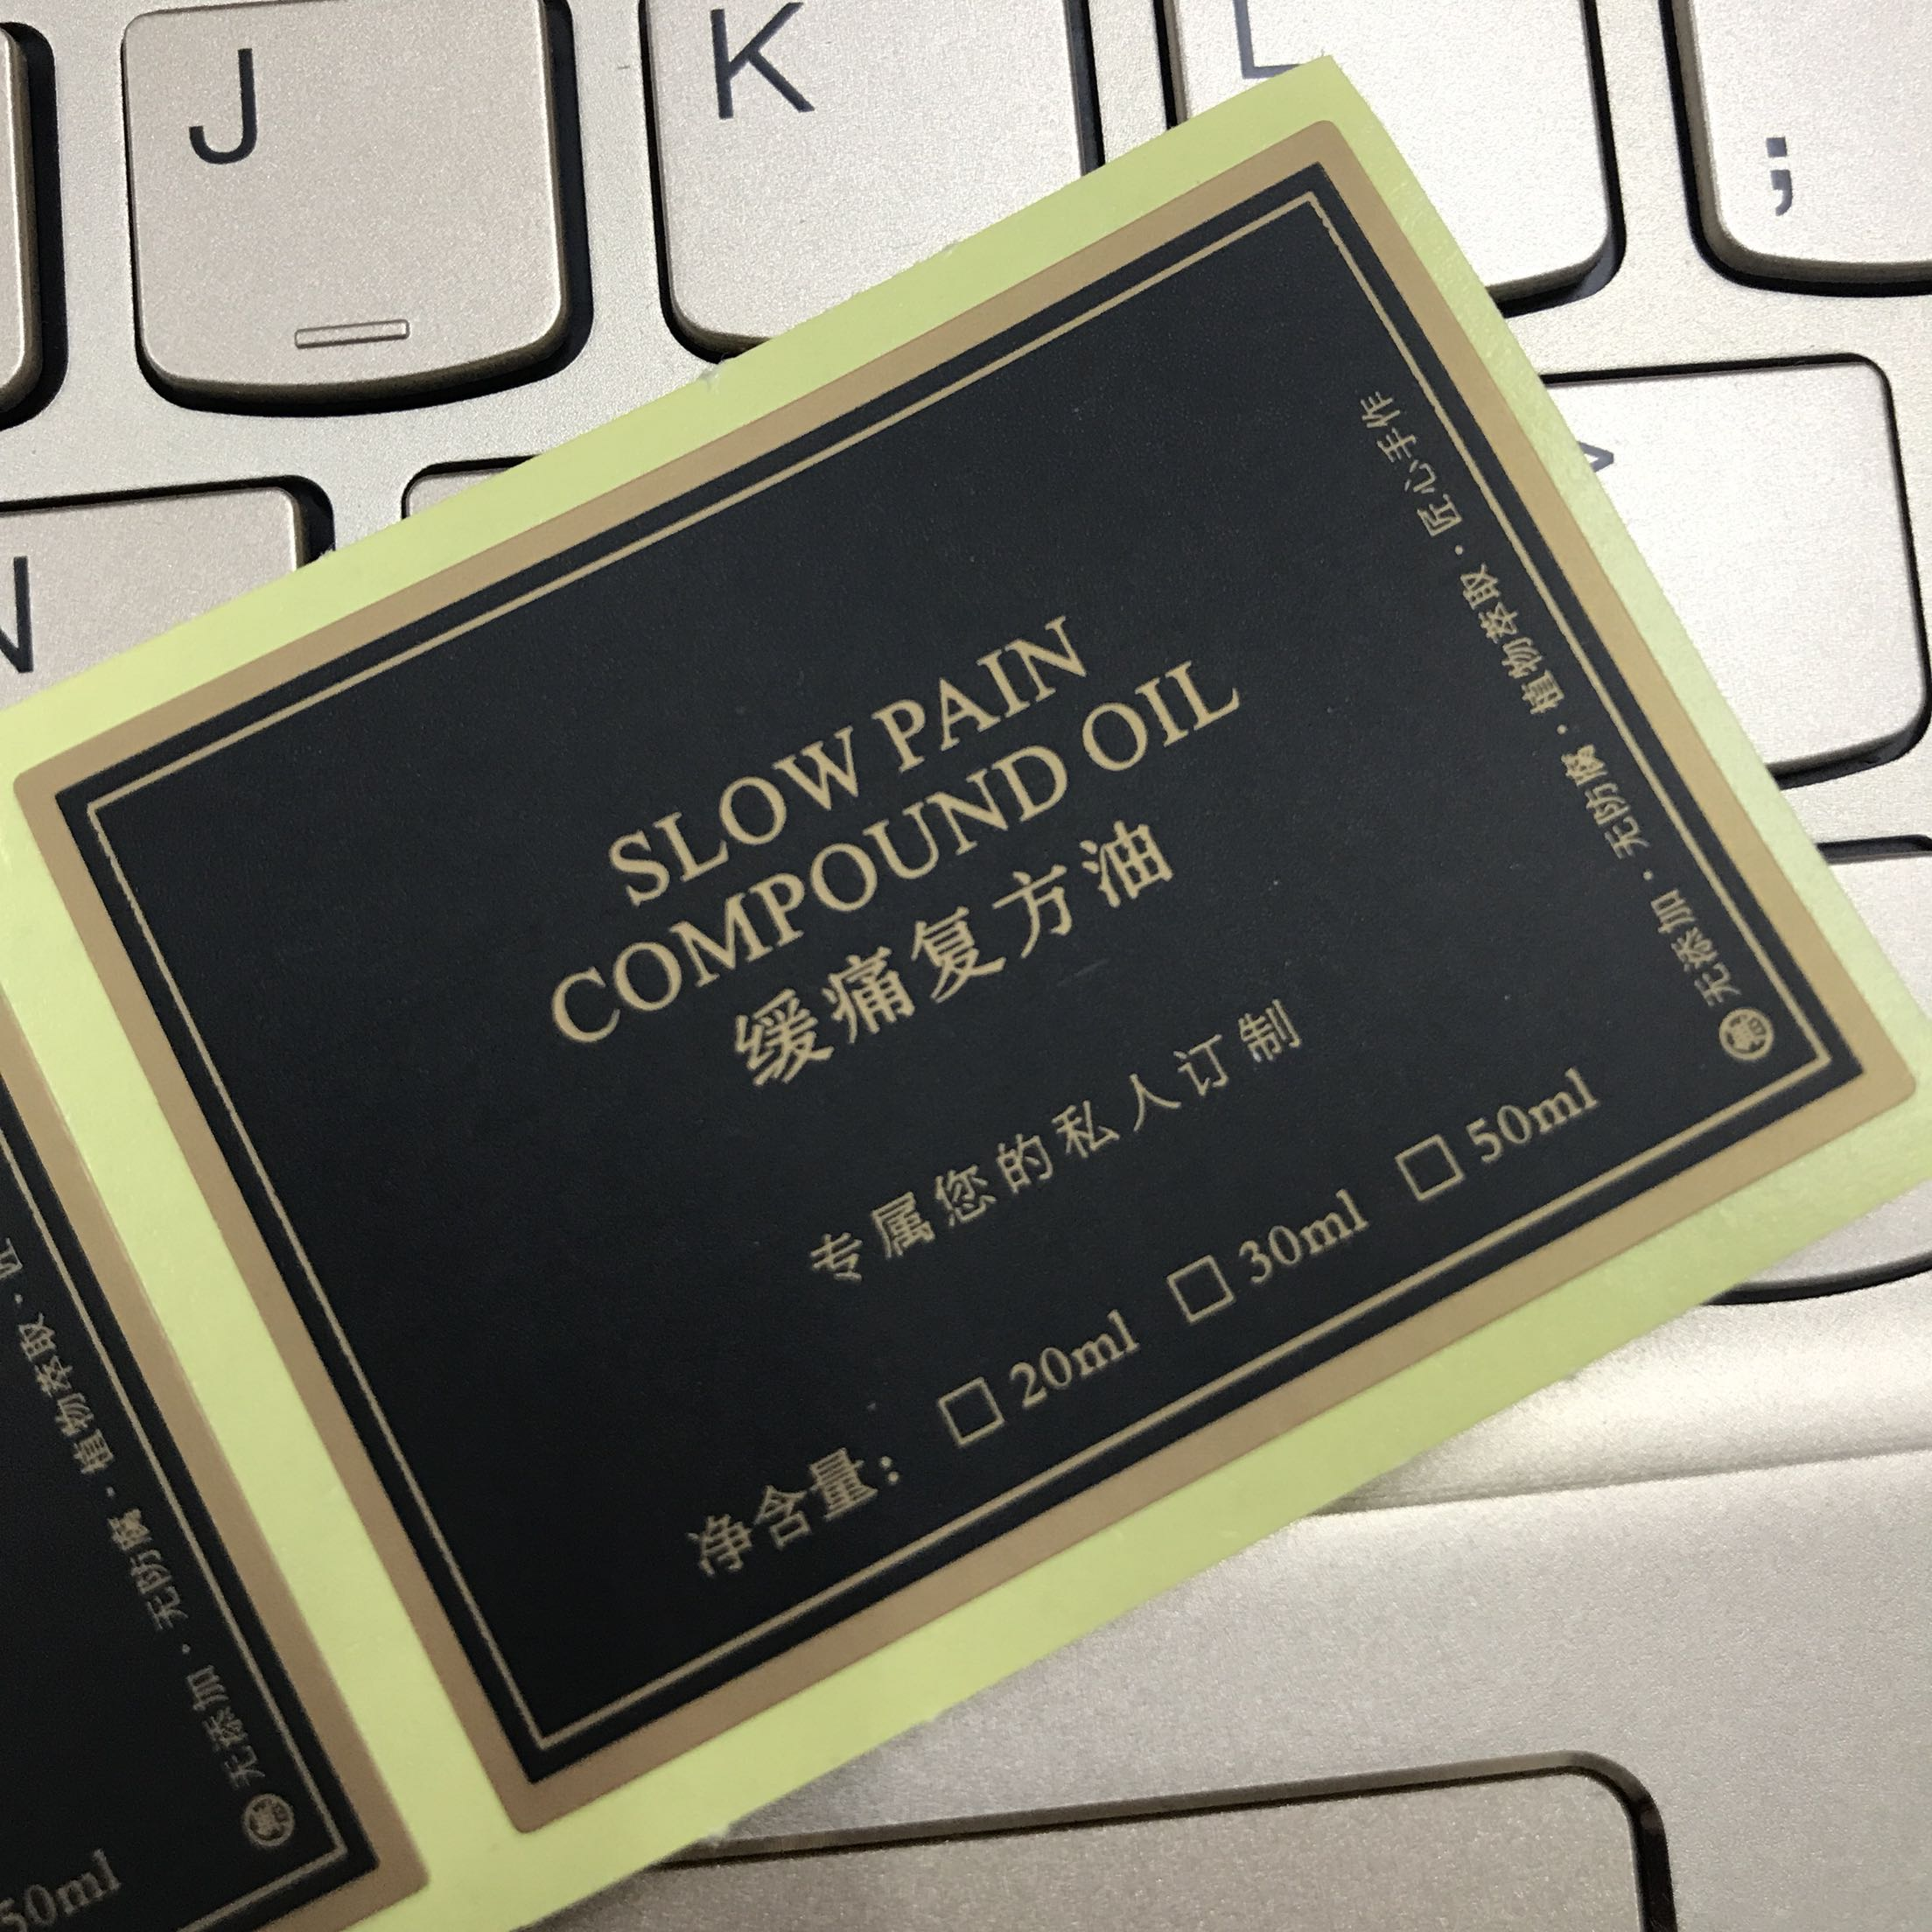 Dacaituan black gold series package label pain relieving compound oil aromatherapy 5 * 3.8 10pcs